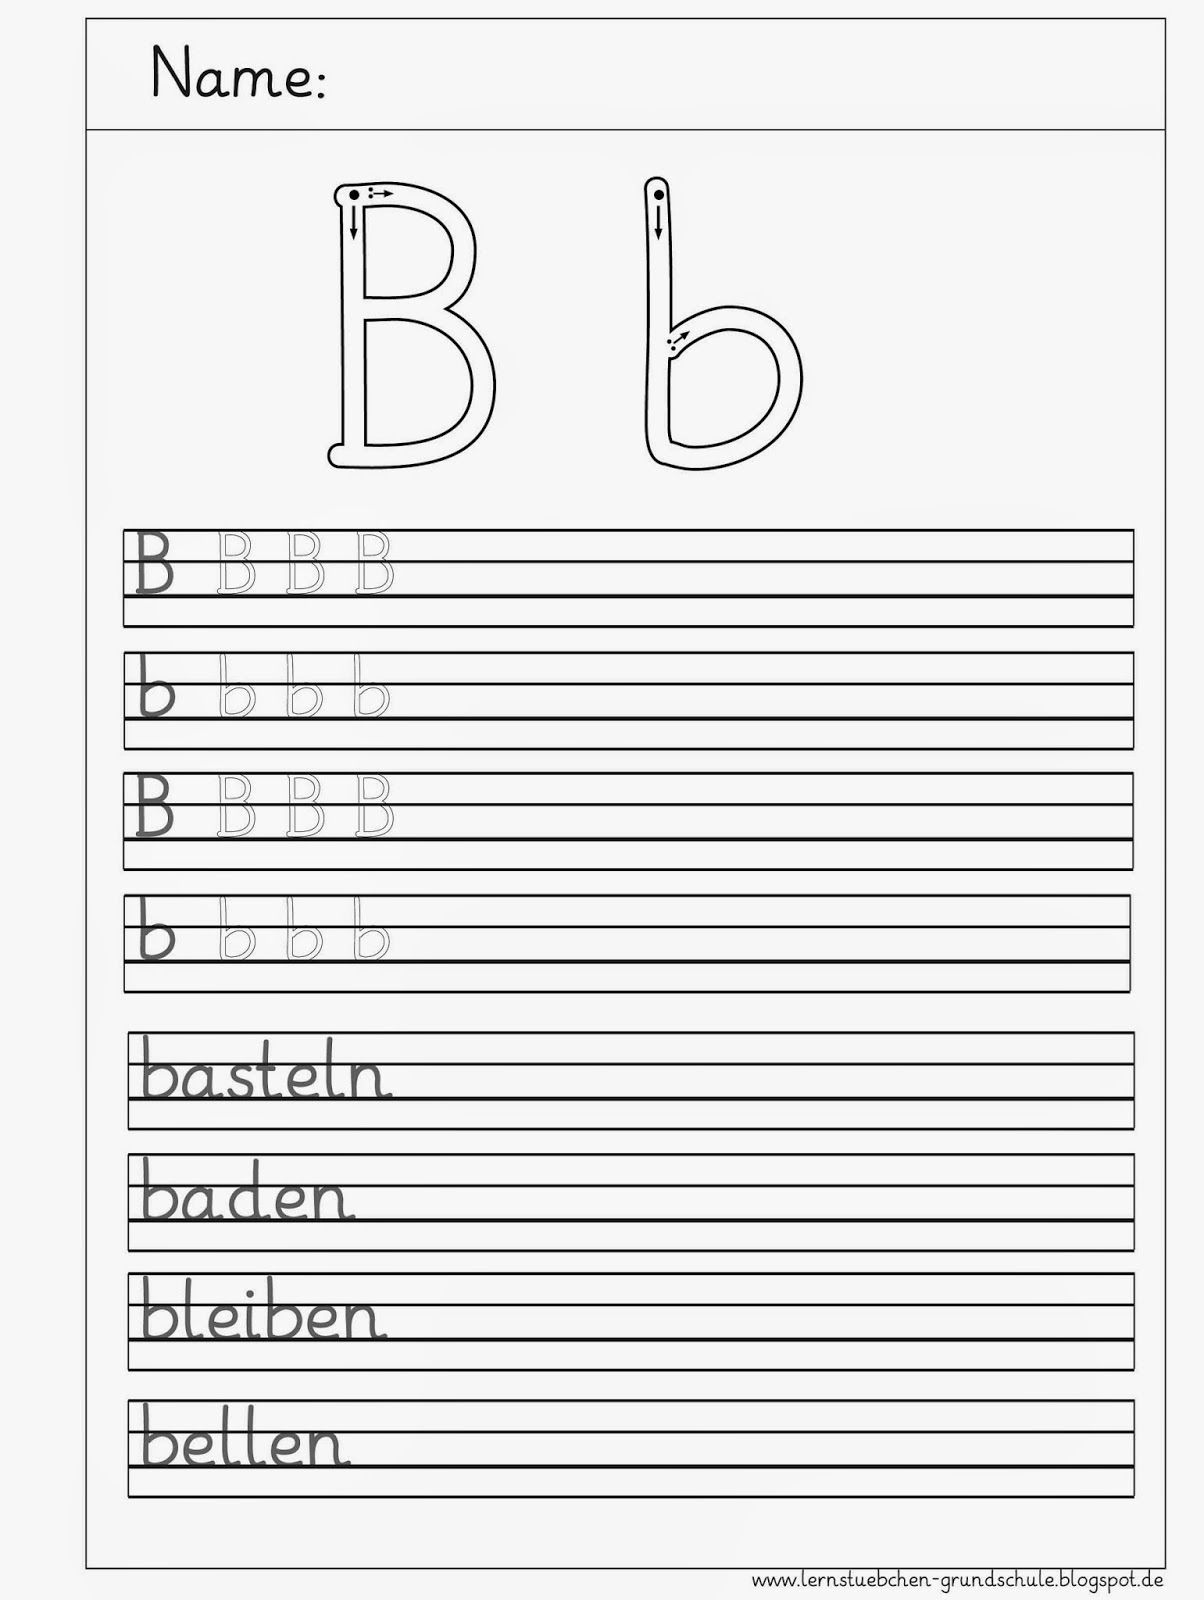 6 buchstabenerarbeitung r arbeitsblatt coloring pages arbeitsbl tter vorschule buchstaben. Black Bedroom Furniture Sets. Home Design Ideas